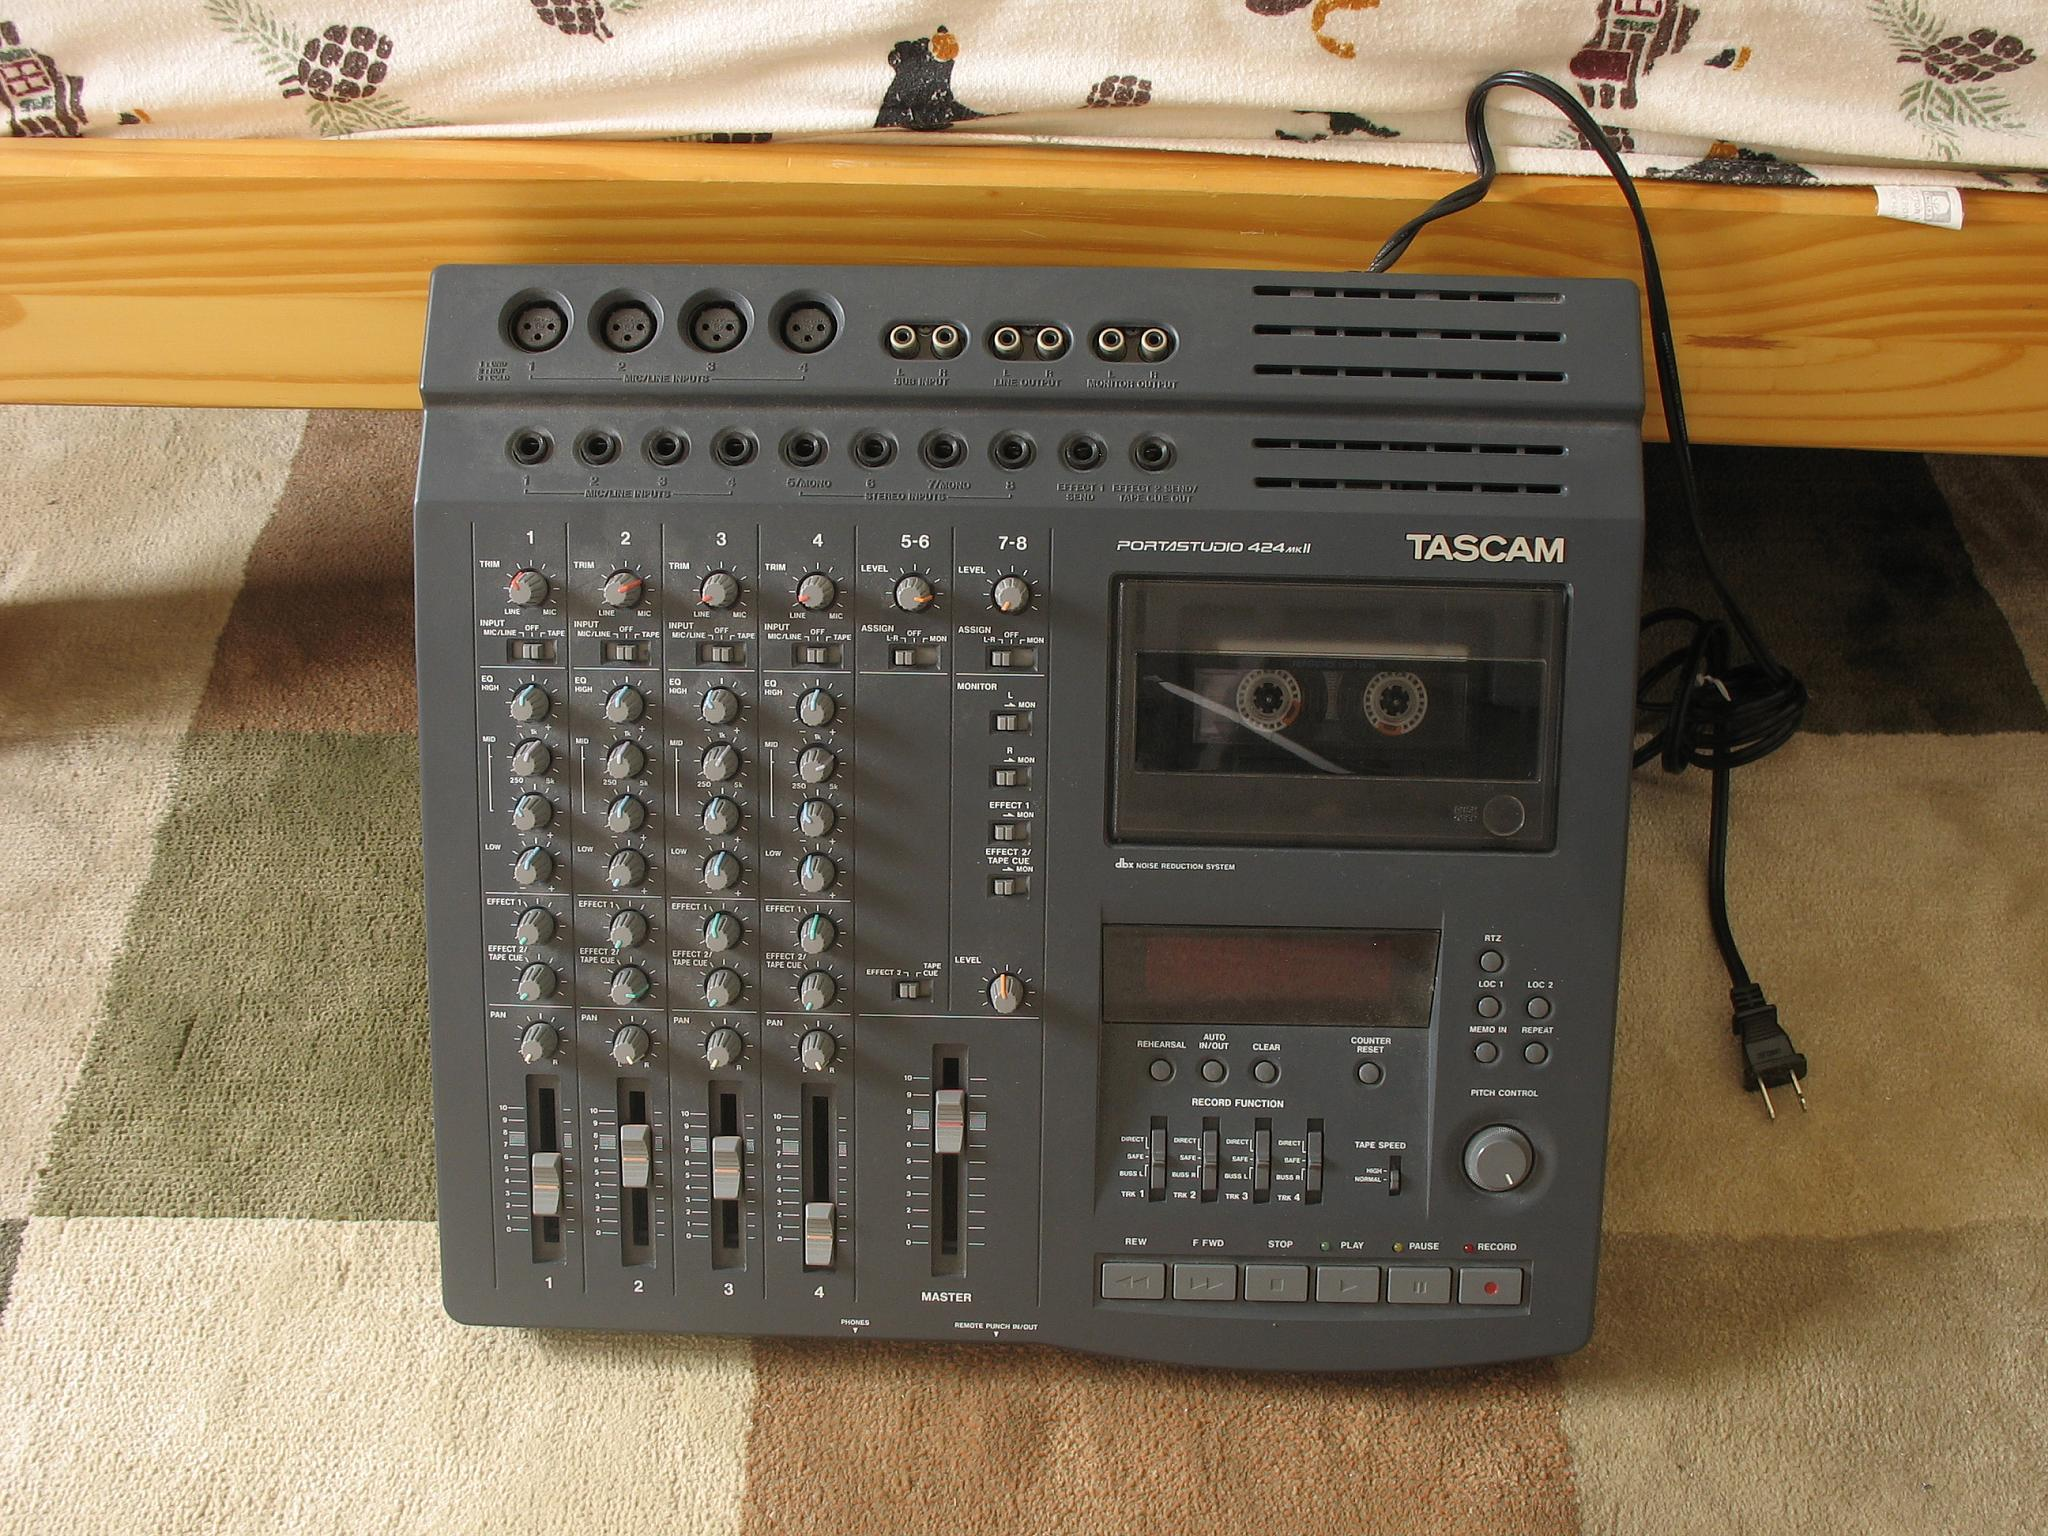 https://upload.wikimedia.org/wikipedia/commons/b/bd/Tascam_PortaStudio_424_MKII.jpg